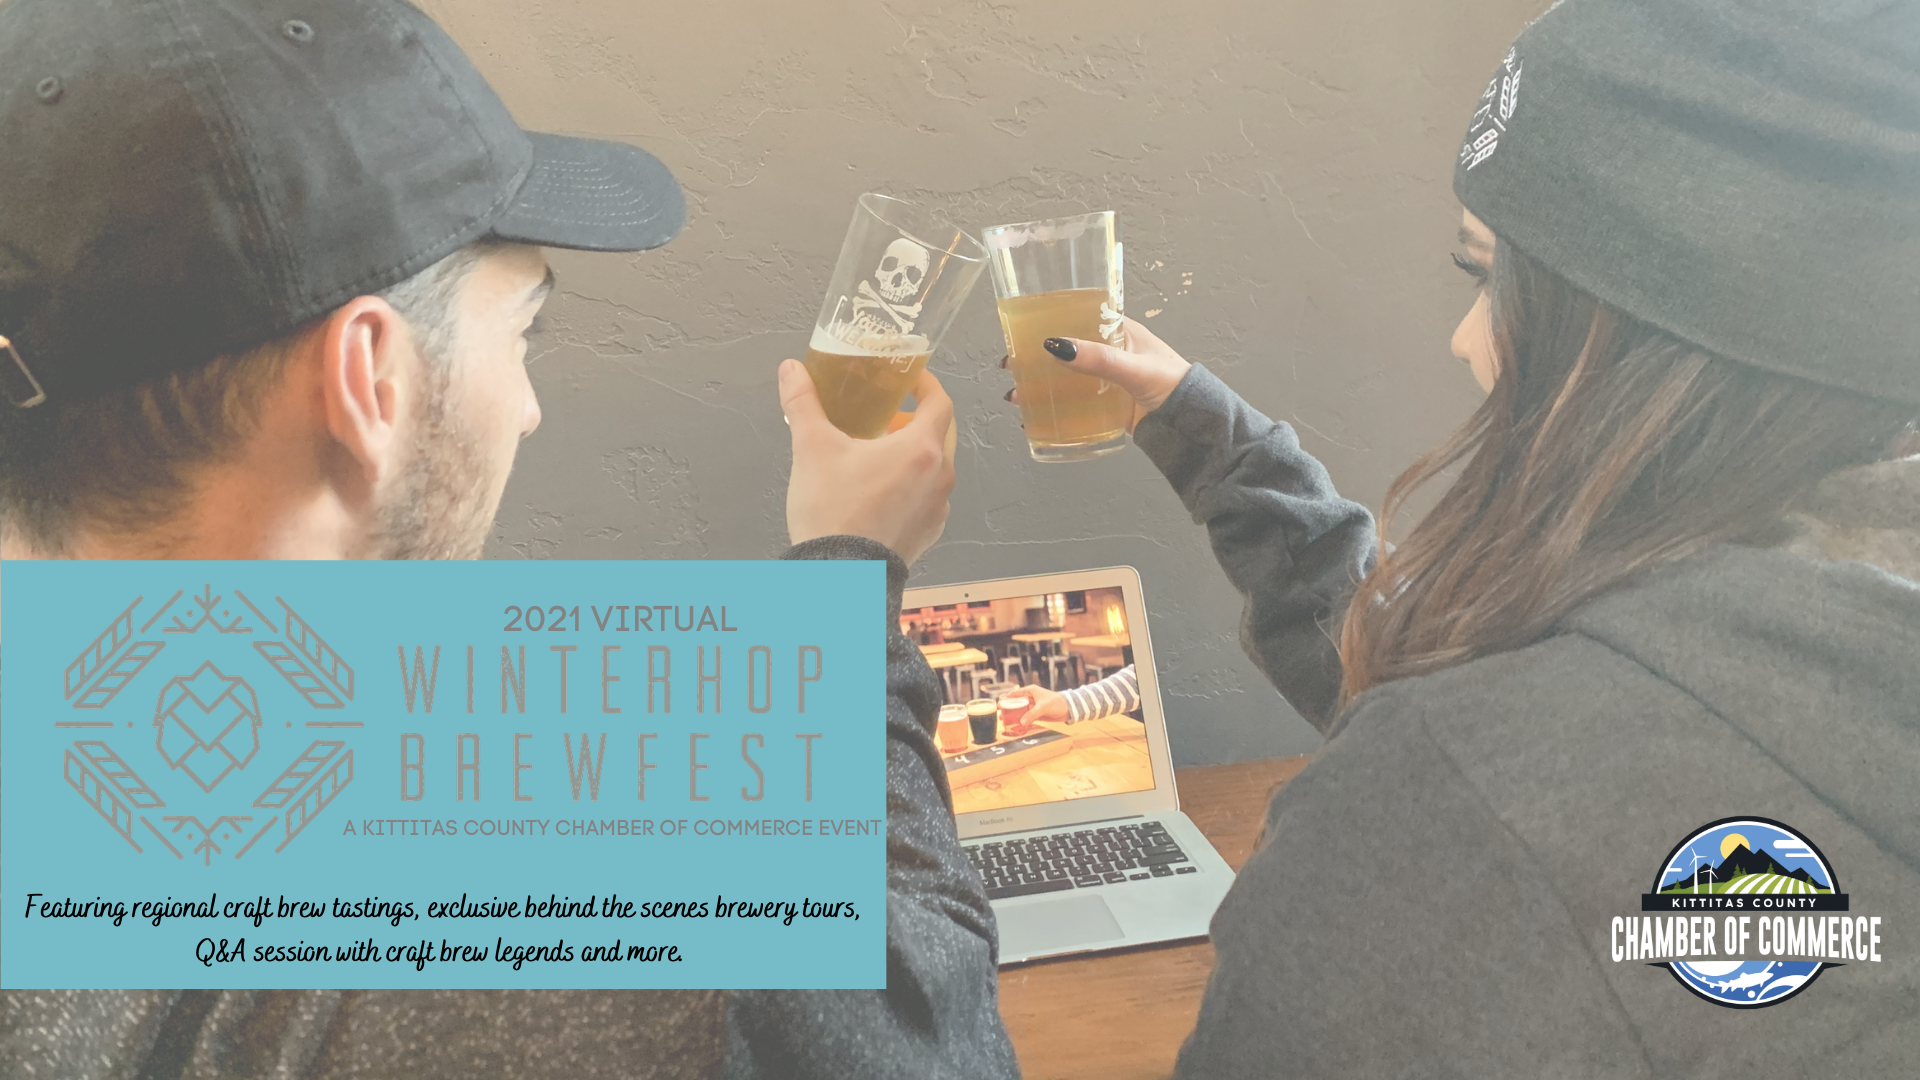 Featuring regional craft brew tastings, exclusive behind the scenes of breweries, Q&A session with craft brew legends and more (1) copy